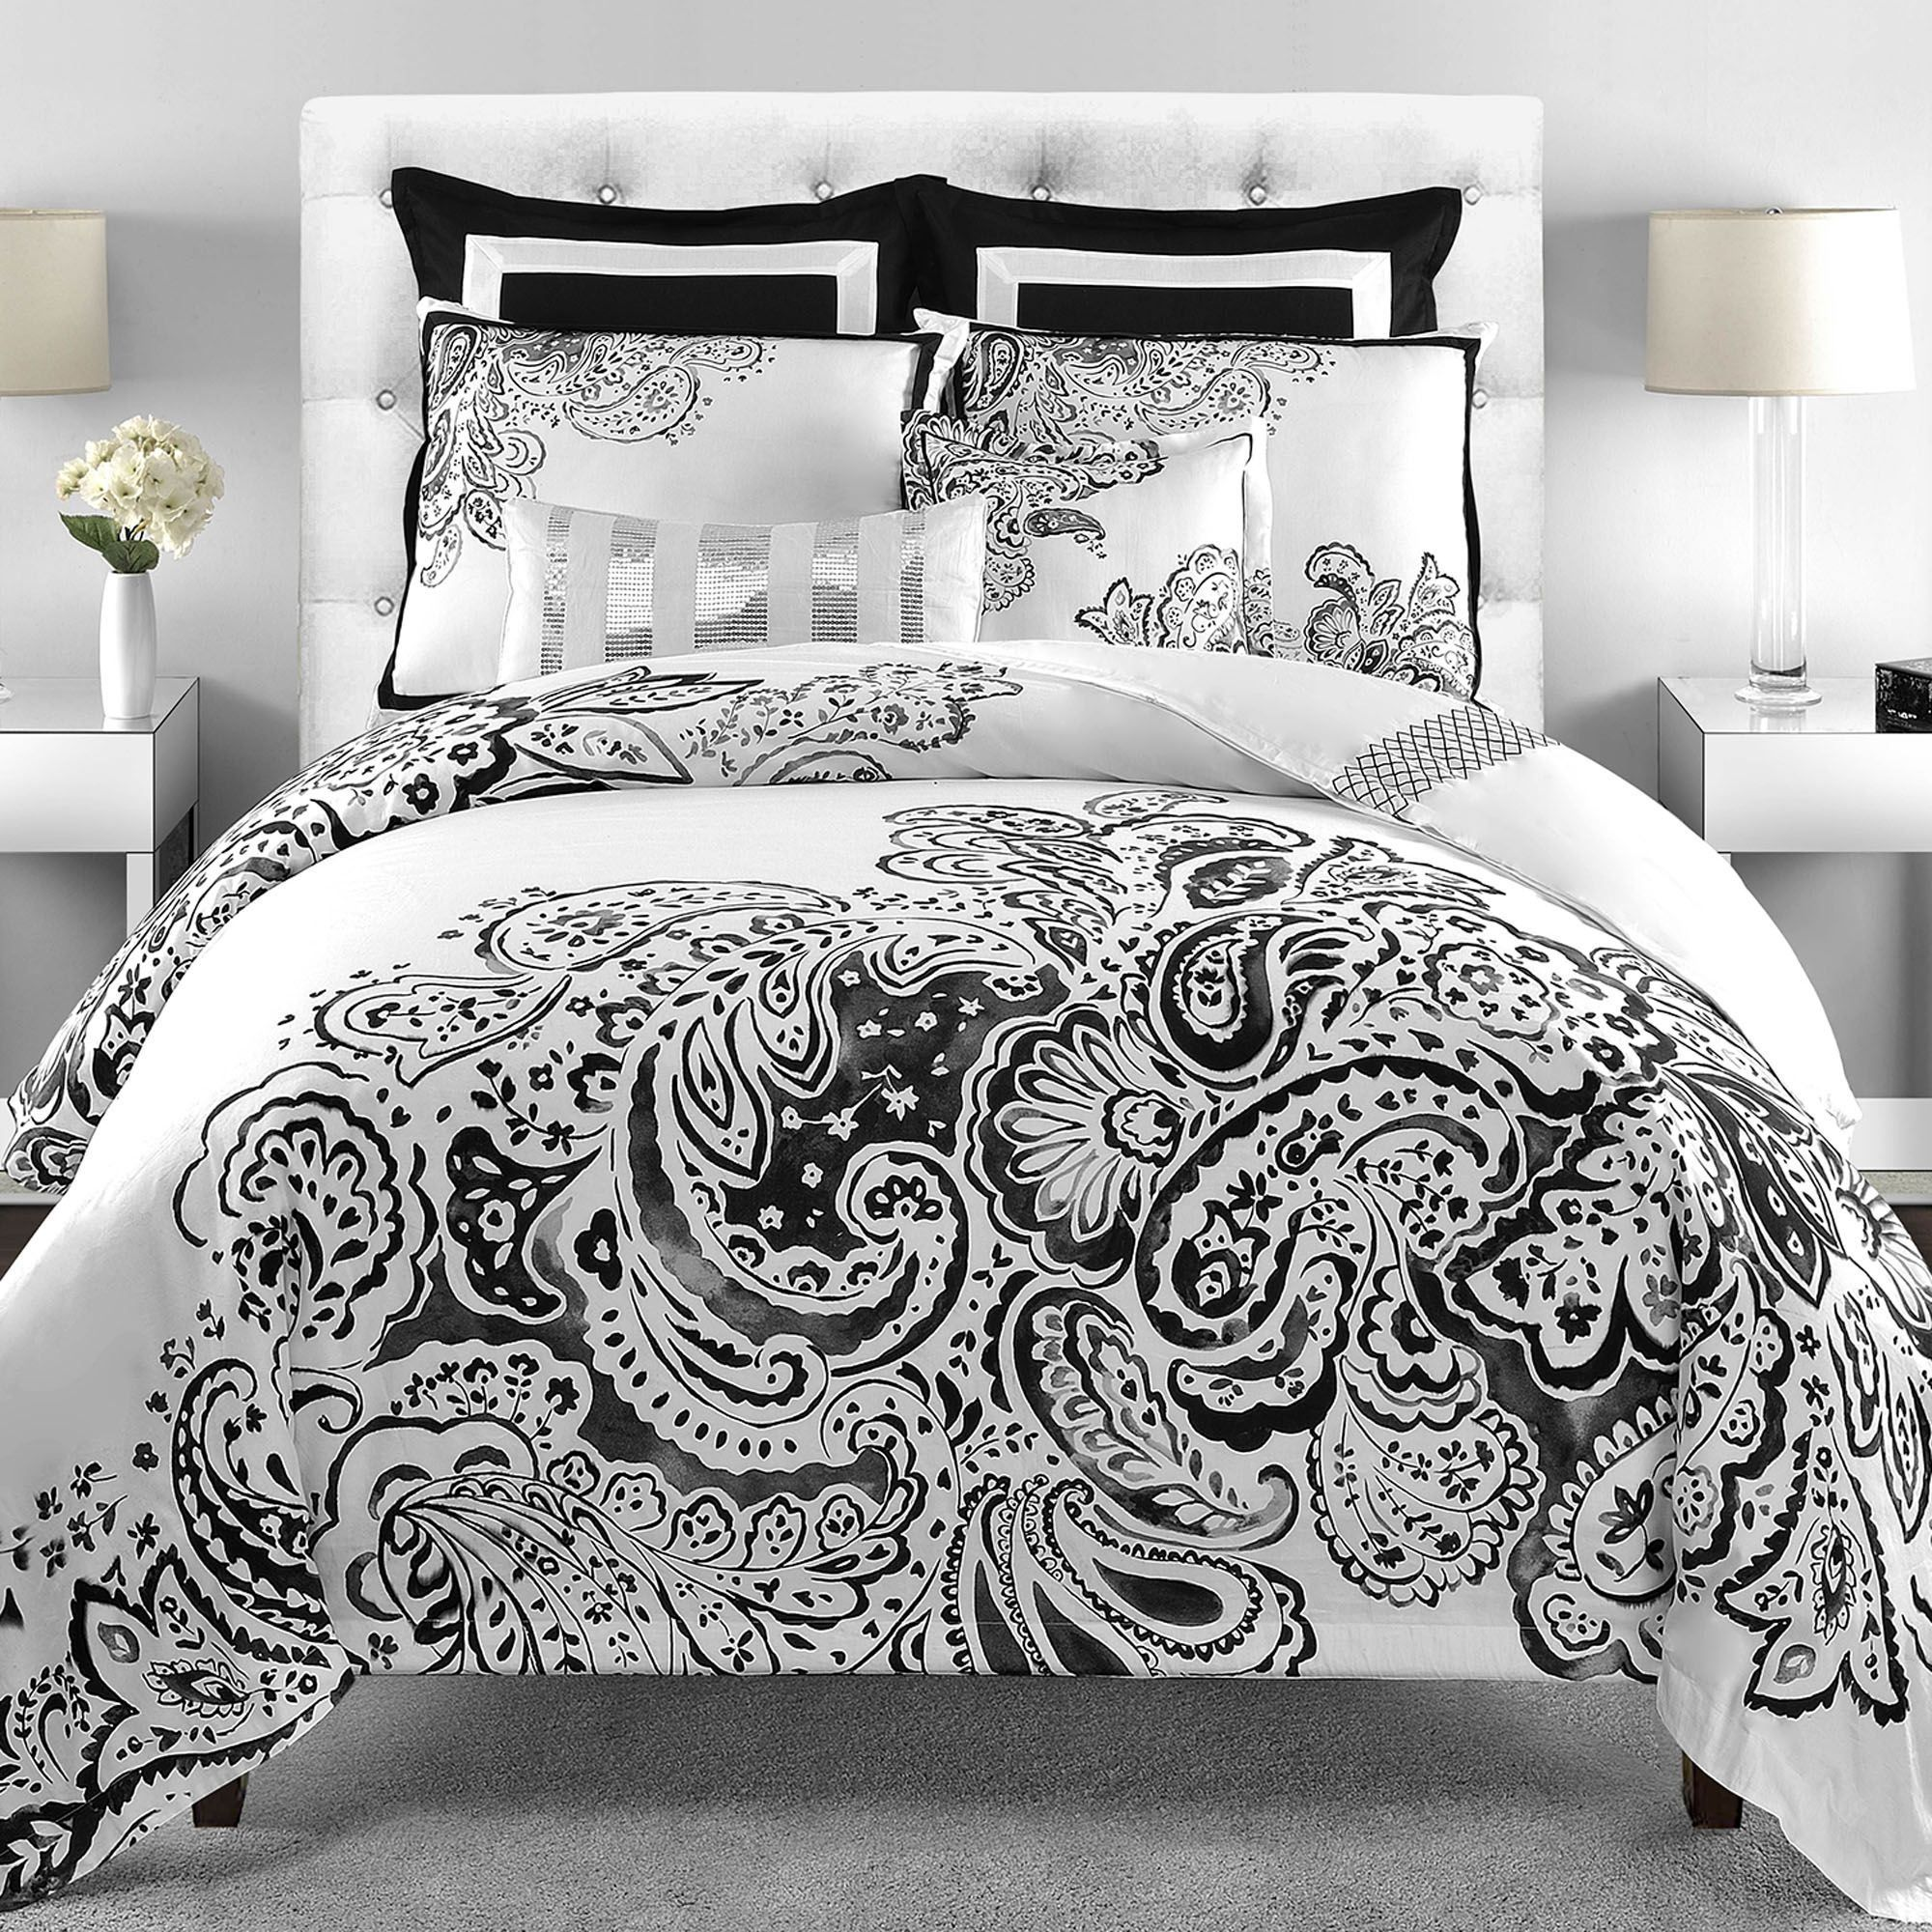 floral black in bedding inspiration popular and a bed comforter of queen files fascinating mainstays white comforters pict bag